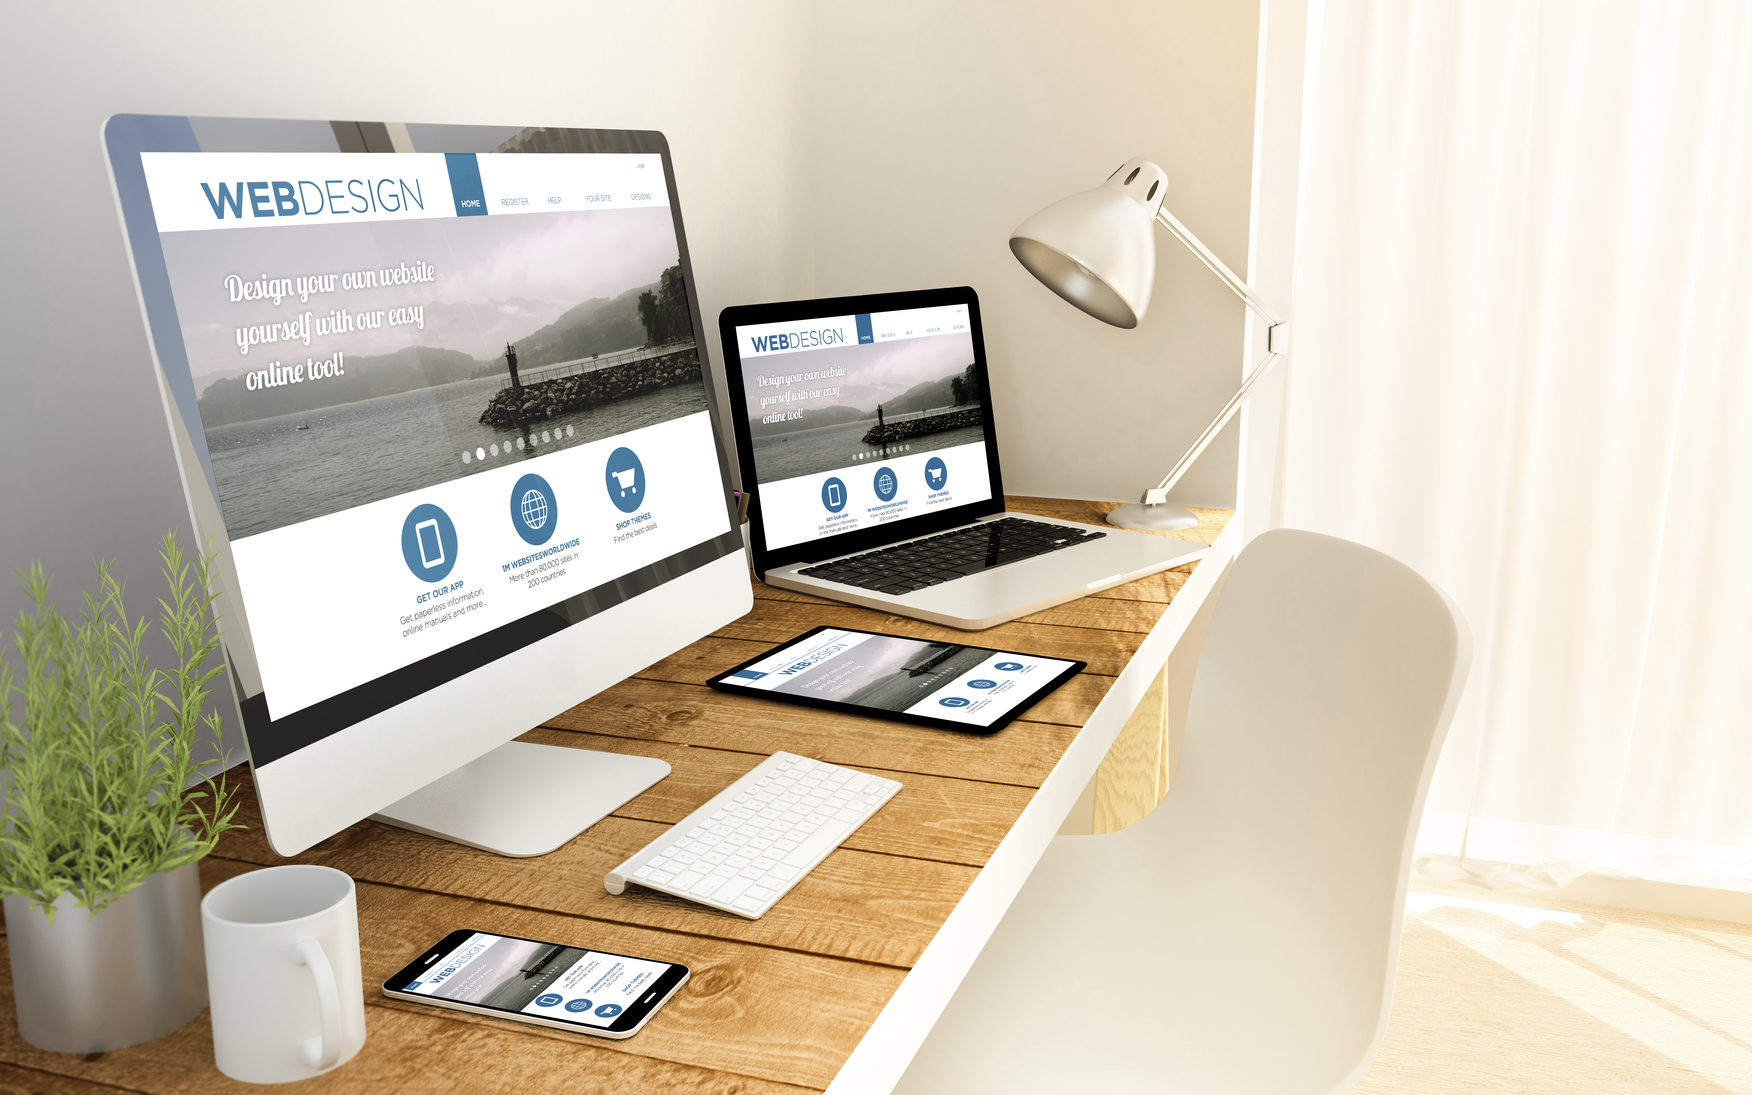 Digital generated devices over a wooden table with responsive design website. All screen graphics are made up.